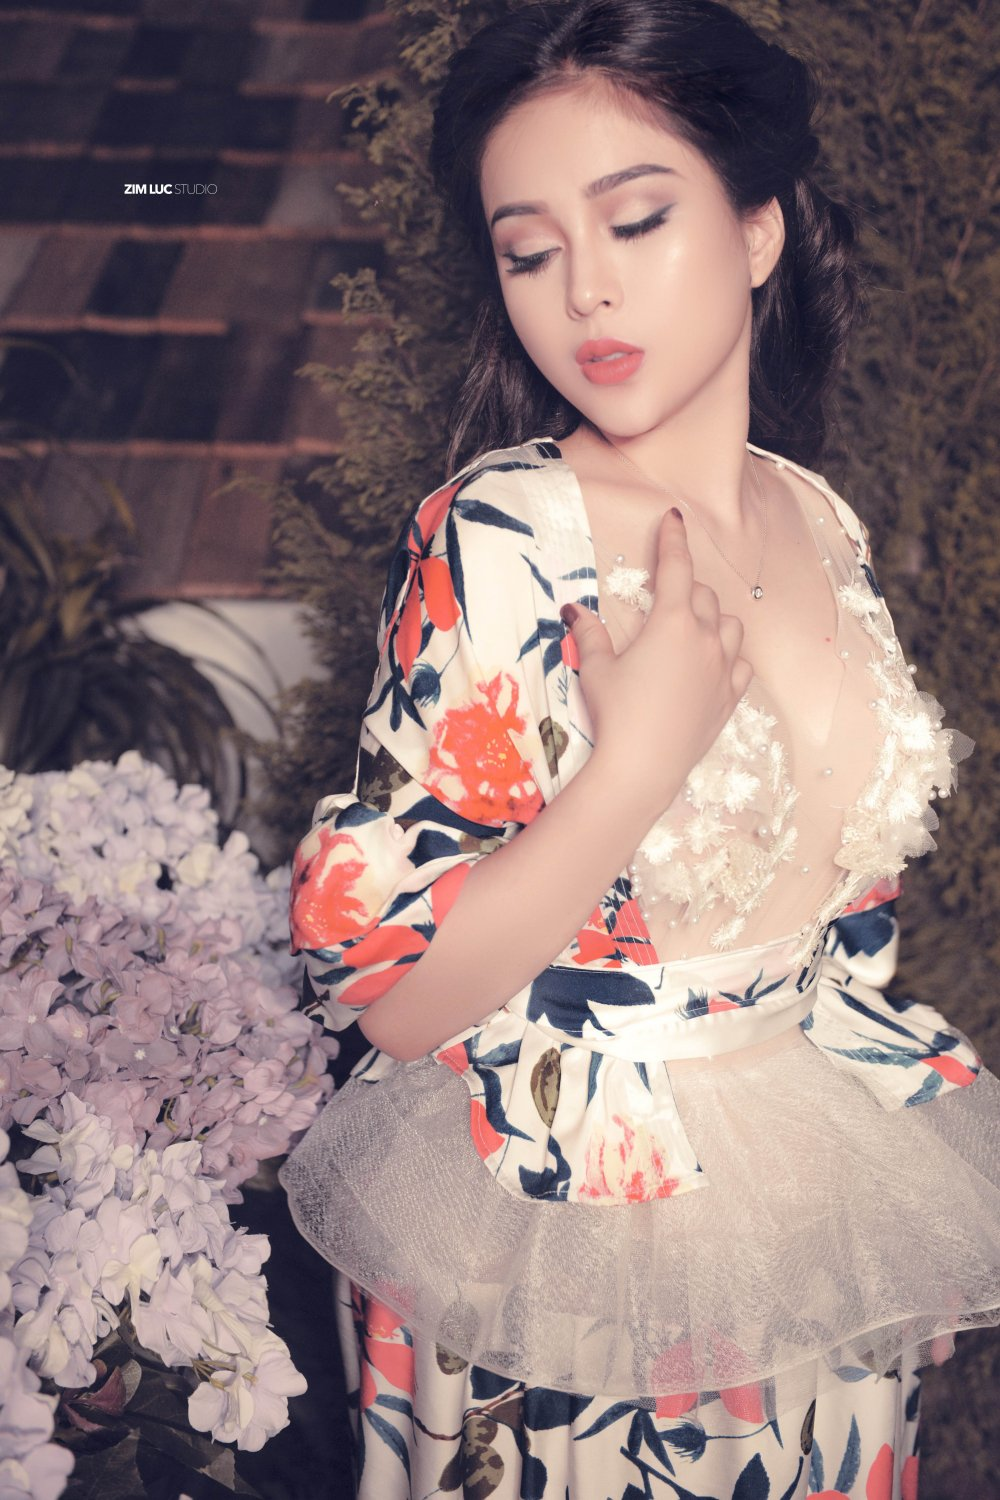 Vo Thanh Hien goi cam me dam long nguoi hinh anh 1